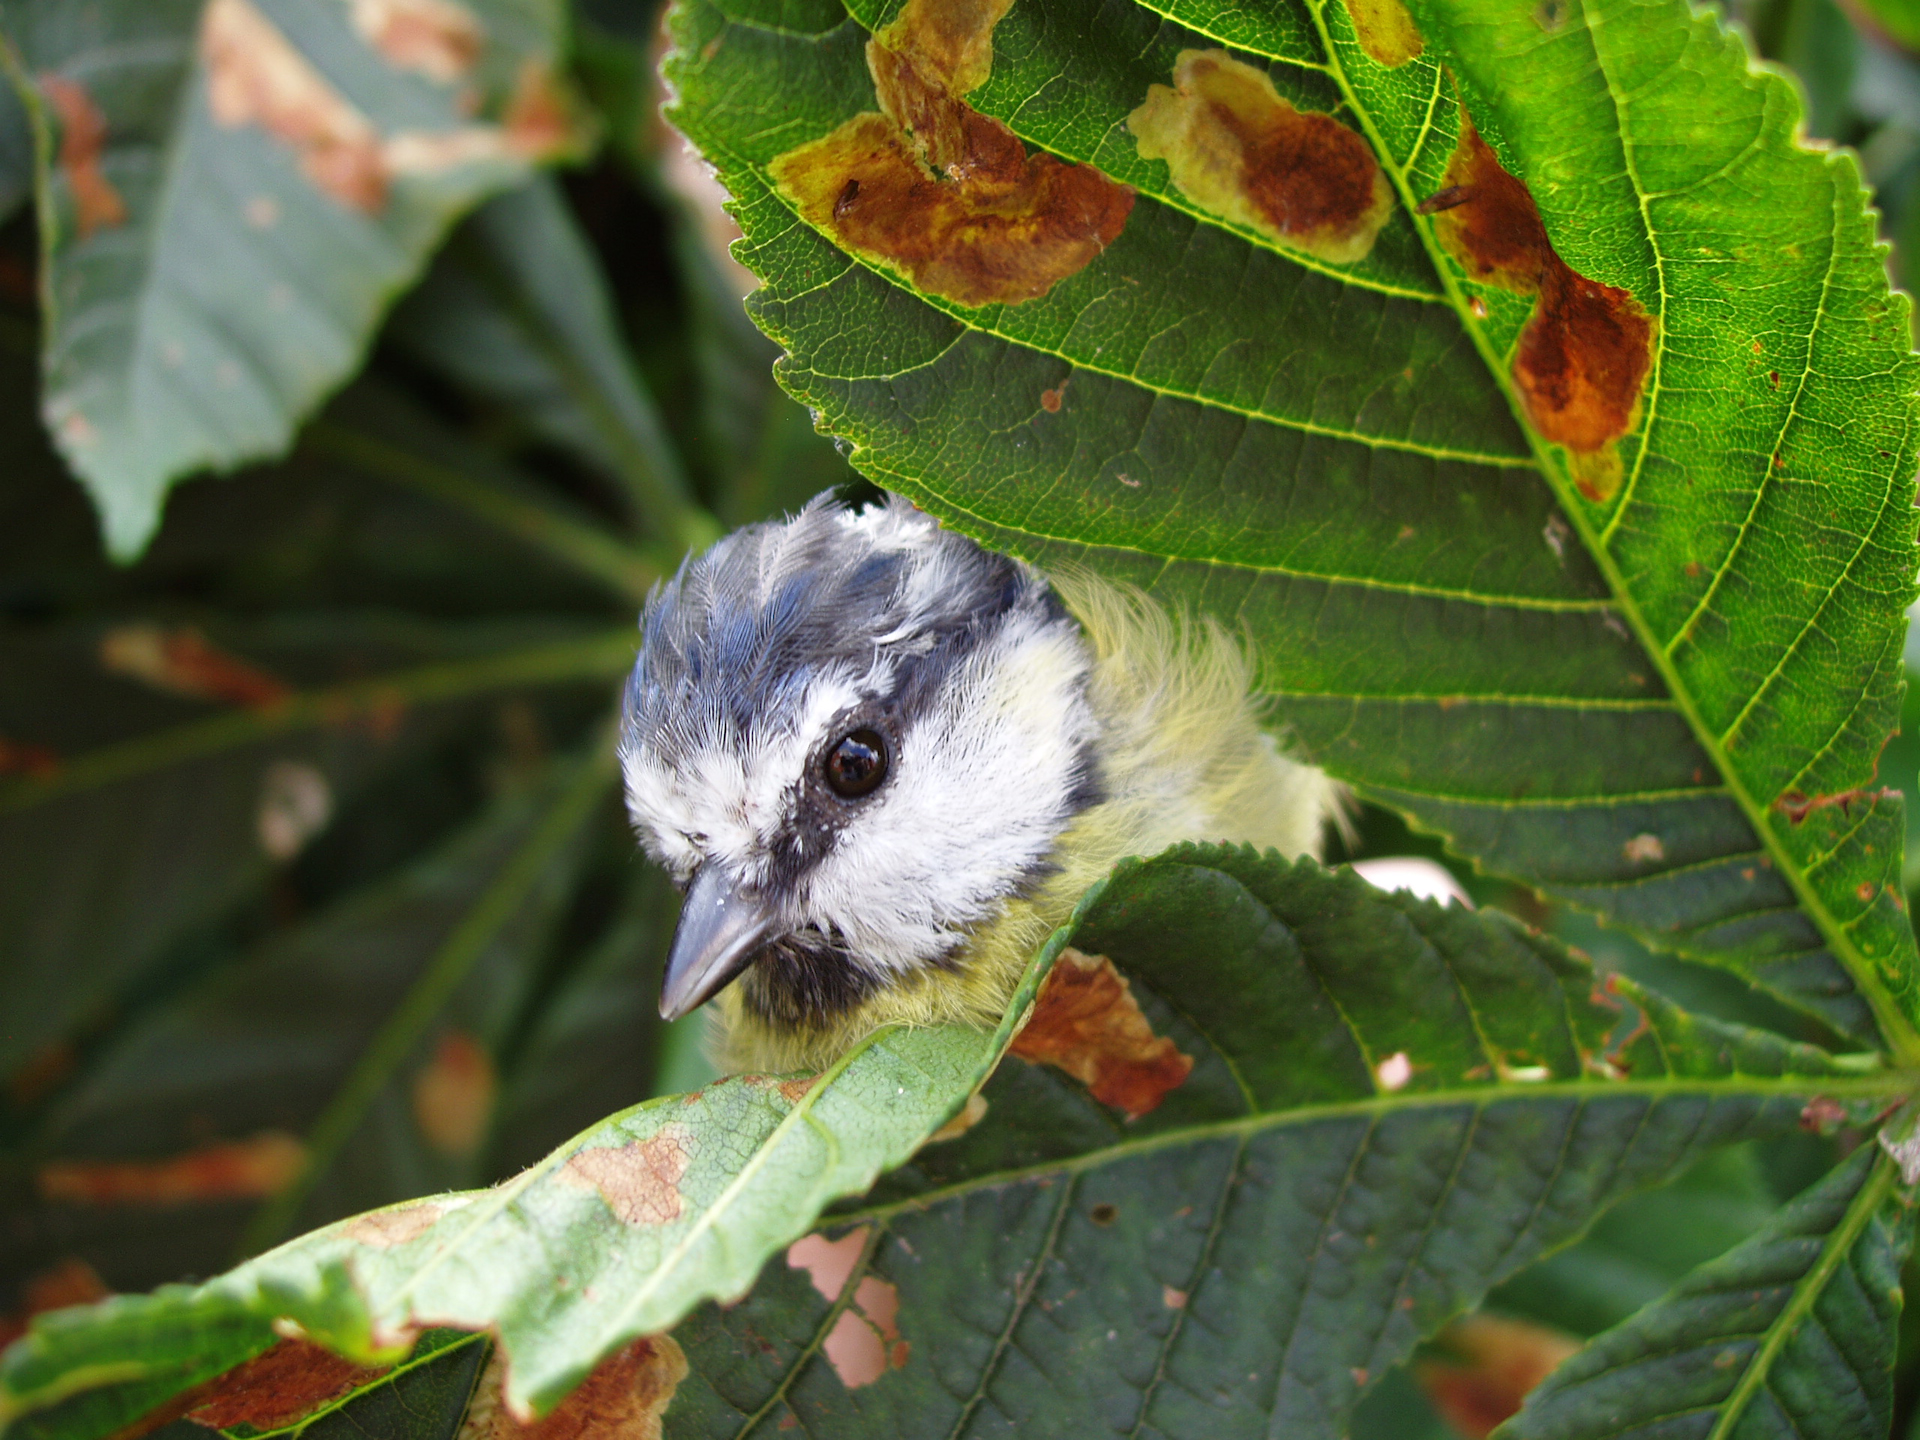 A blue tit among horse-chestnut leaves that are covered with  brown patches of damage caused by caterpillars  of the leaf mining moths. Photo: Richard Broughton/CEH